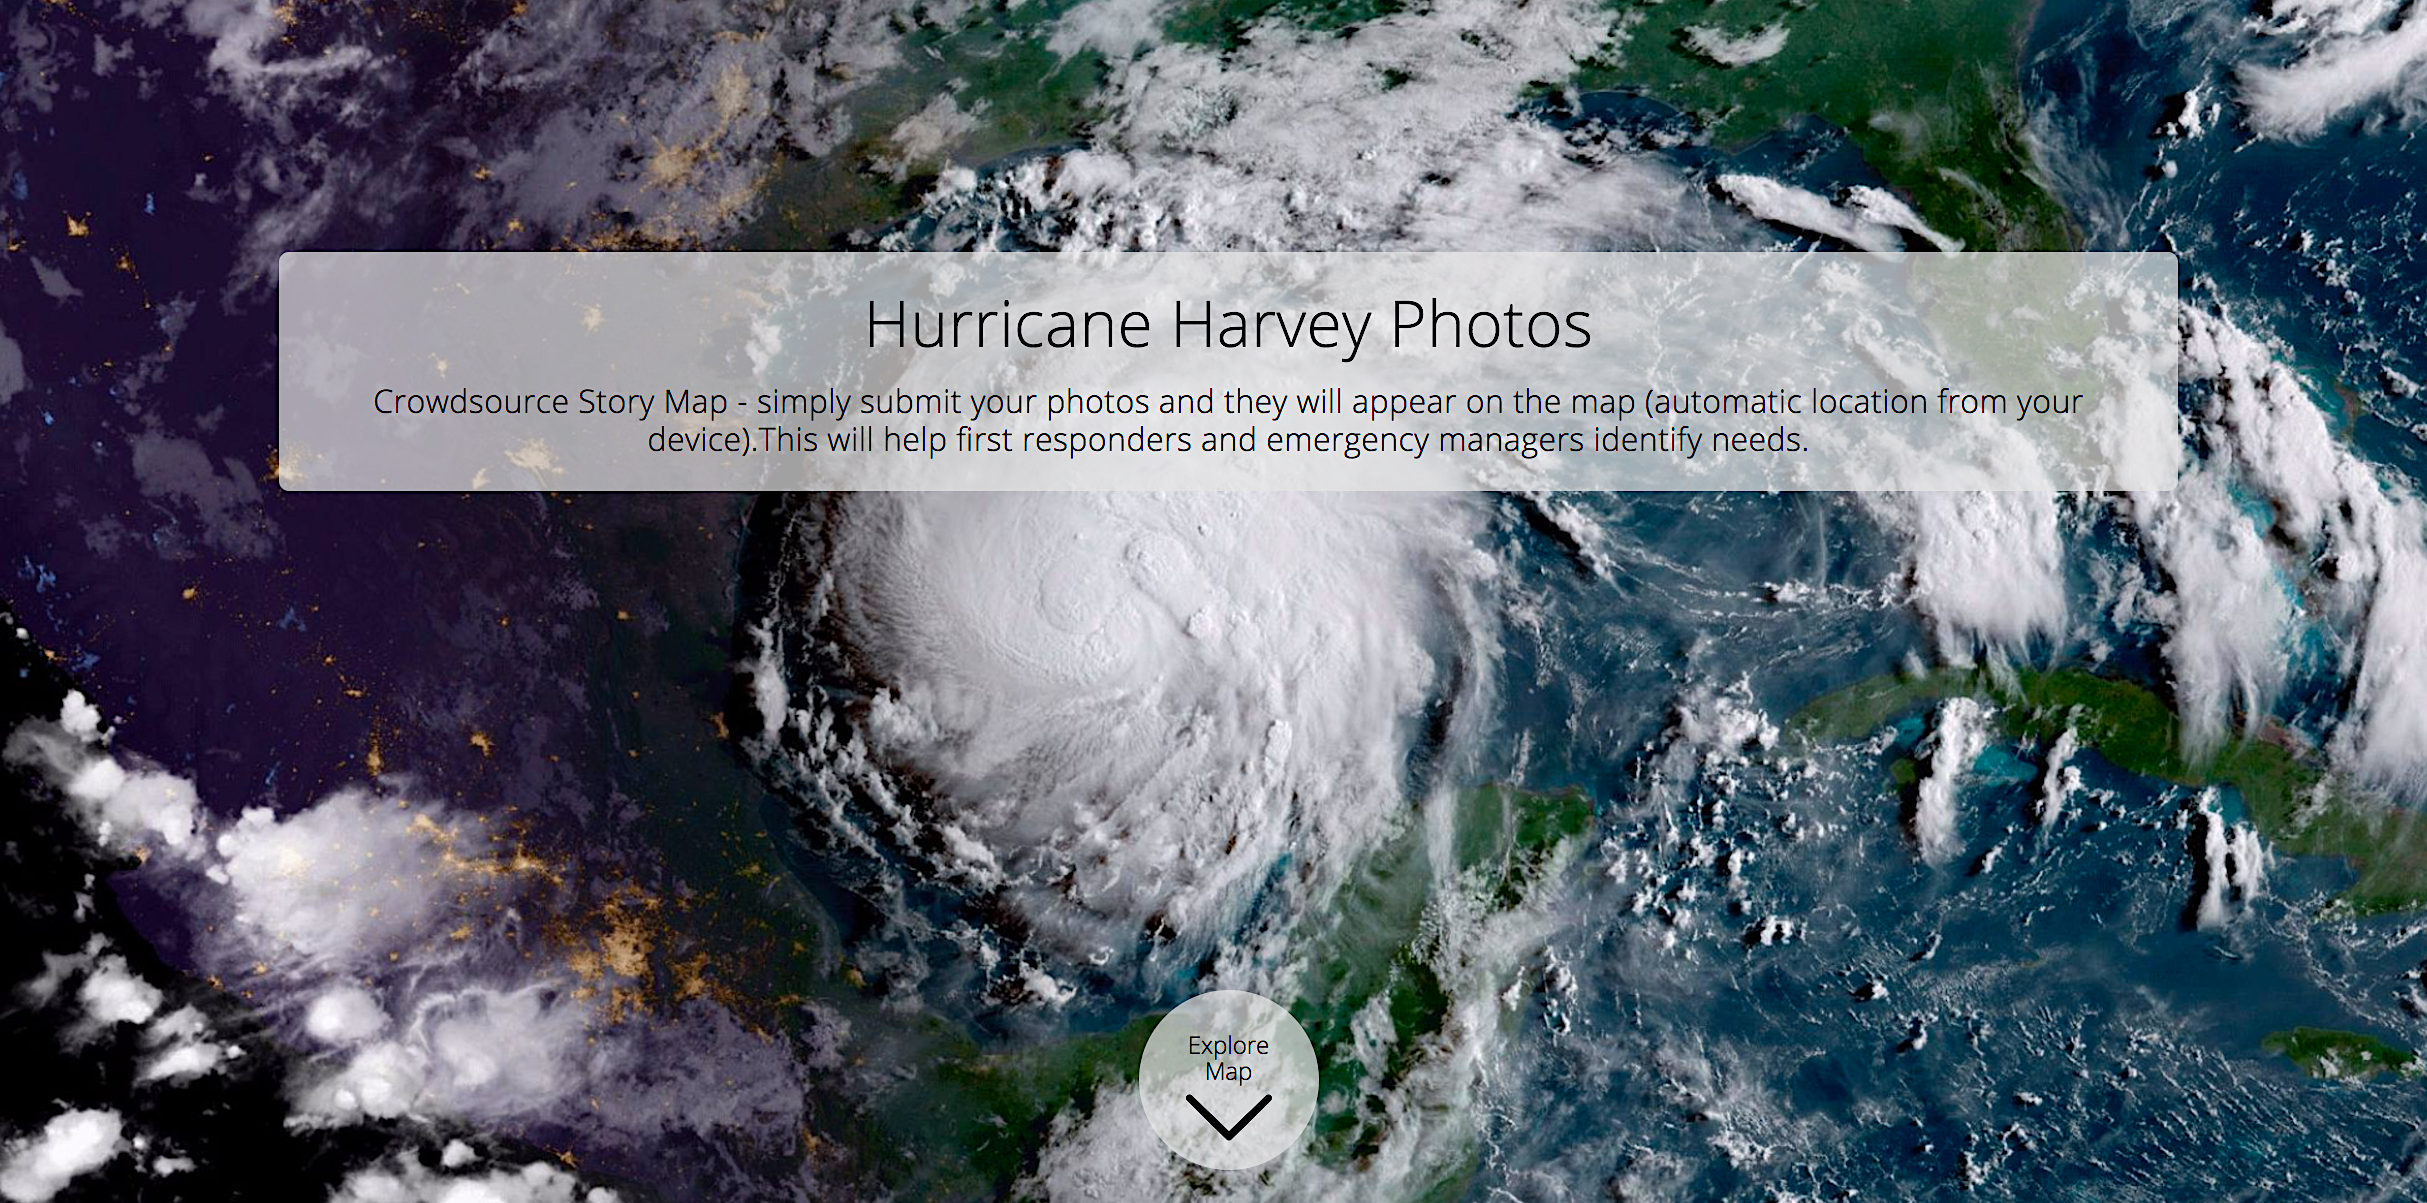 This story map is collecting photos from